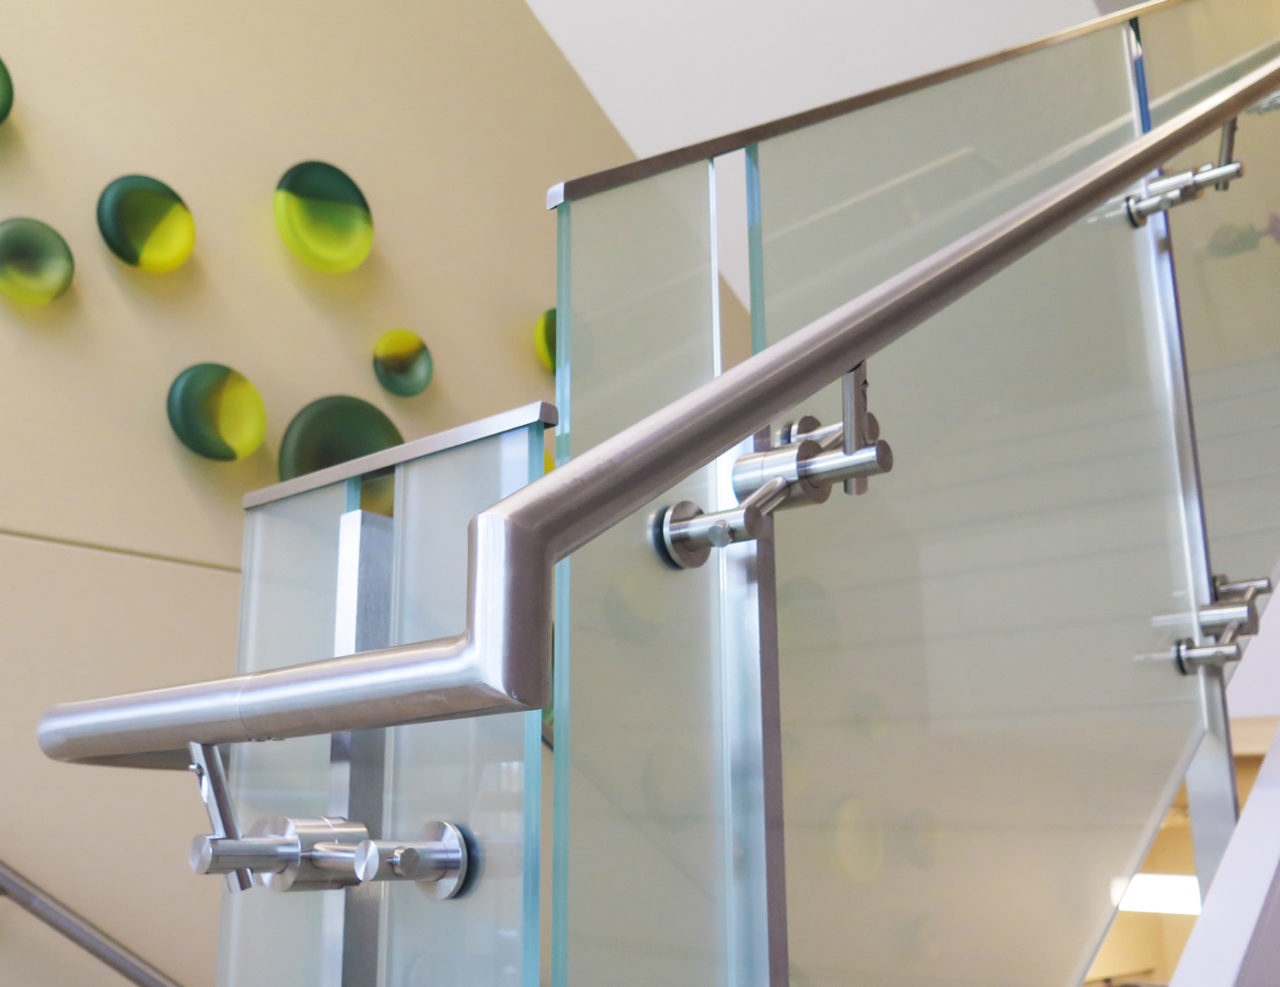 Line series glass railing with stainless steel handrail on stairs and landings in healthcare facility